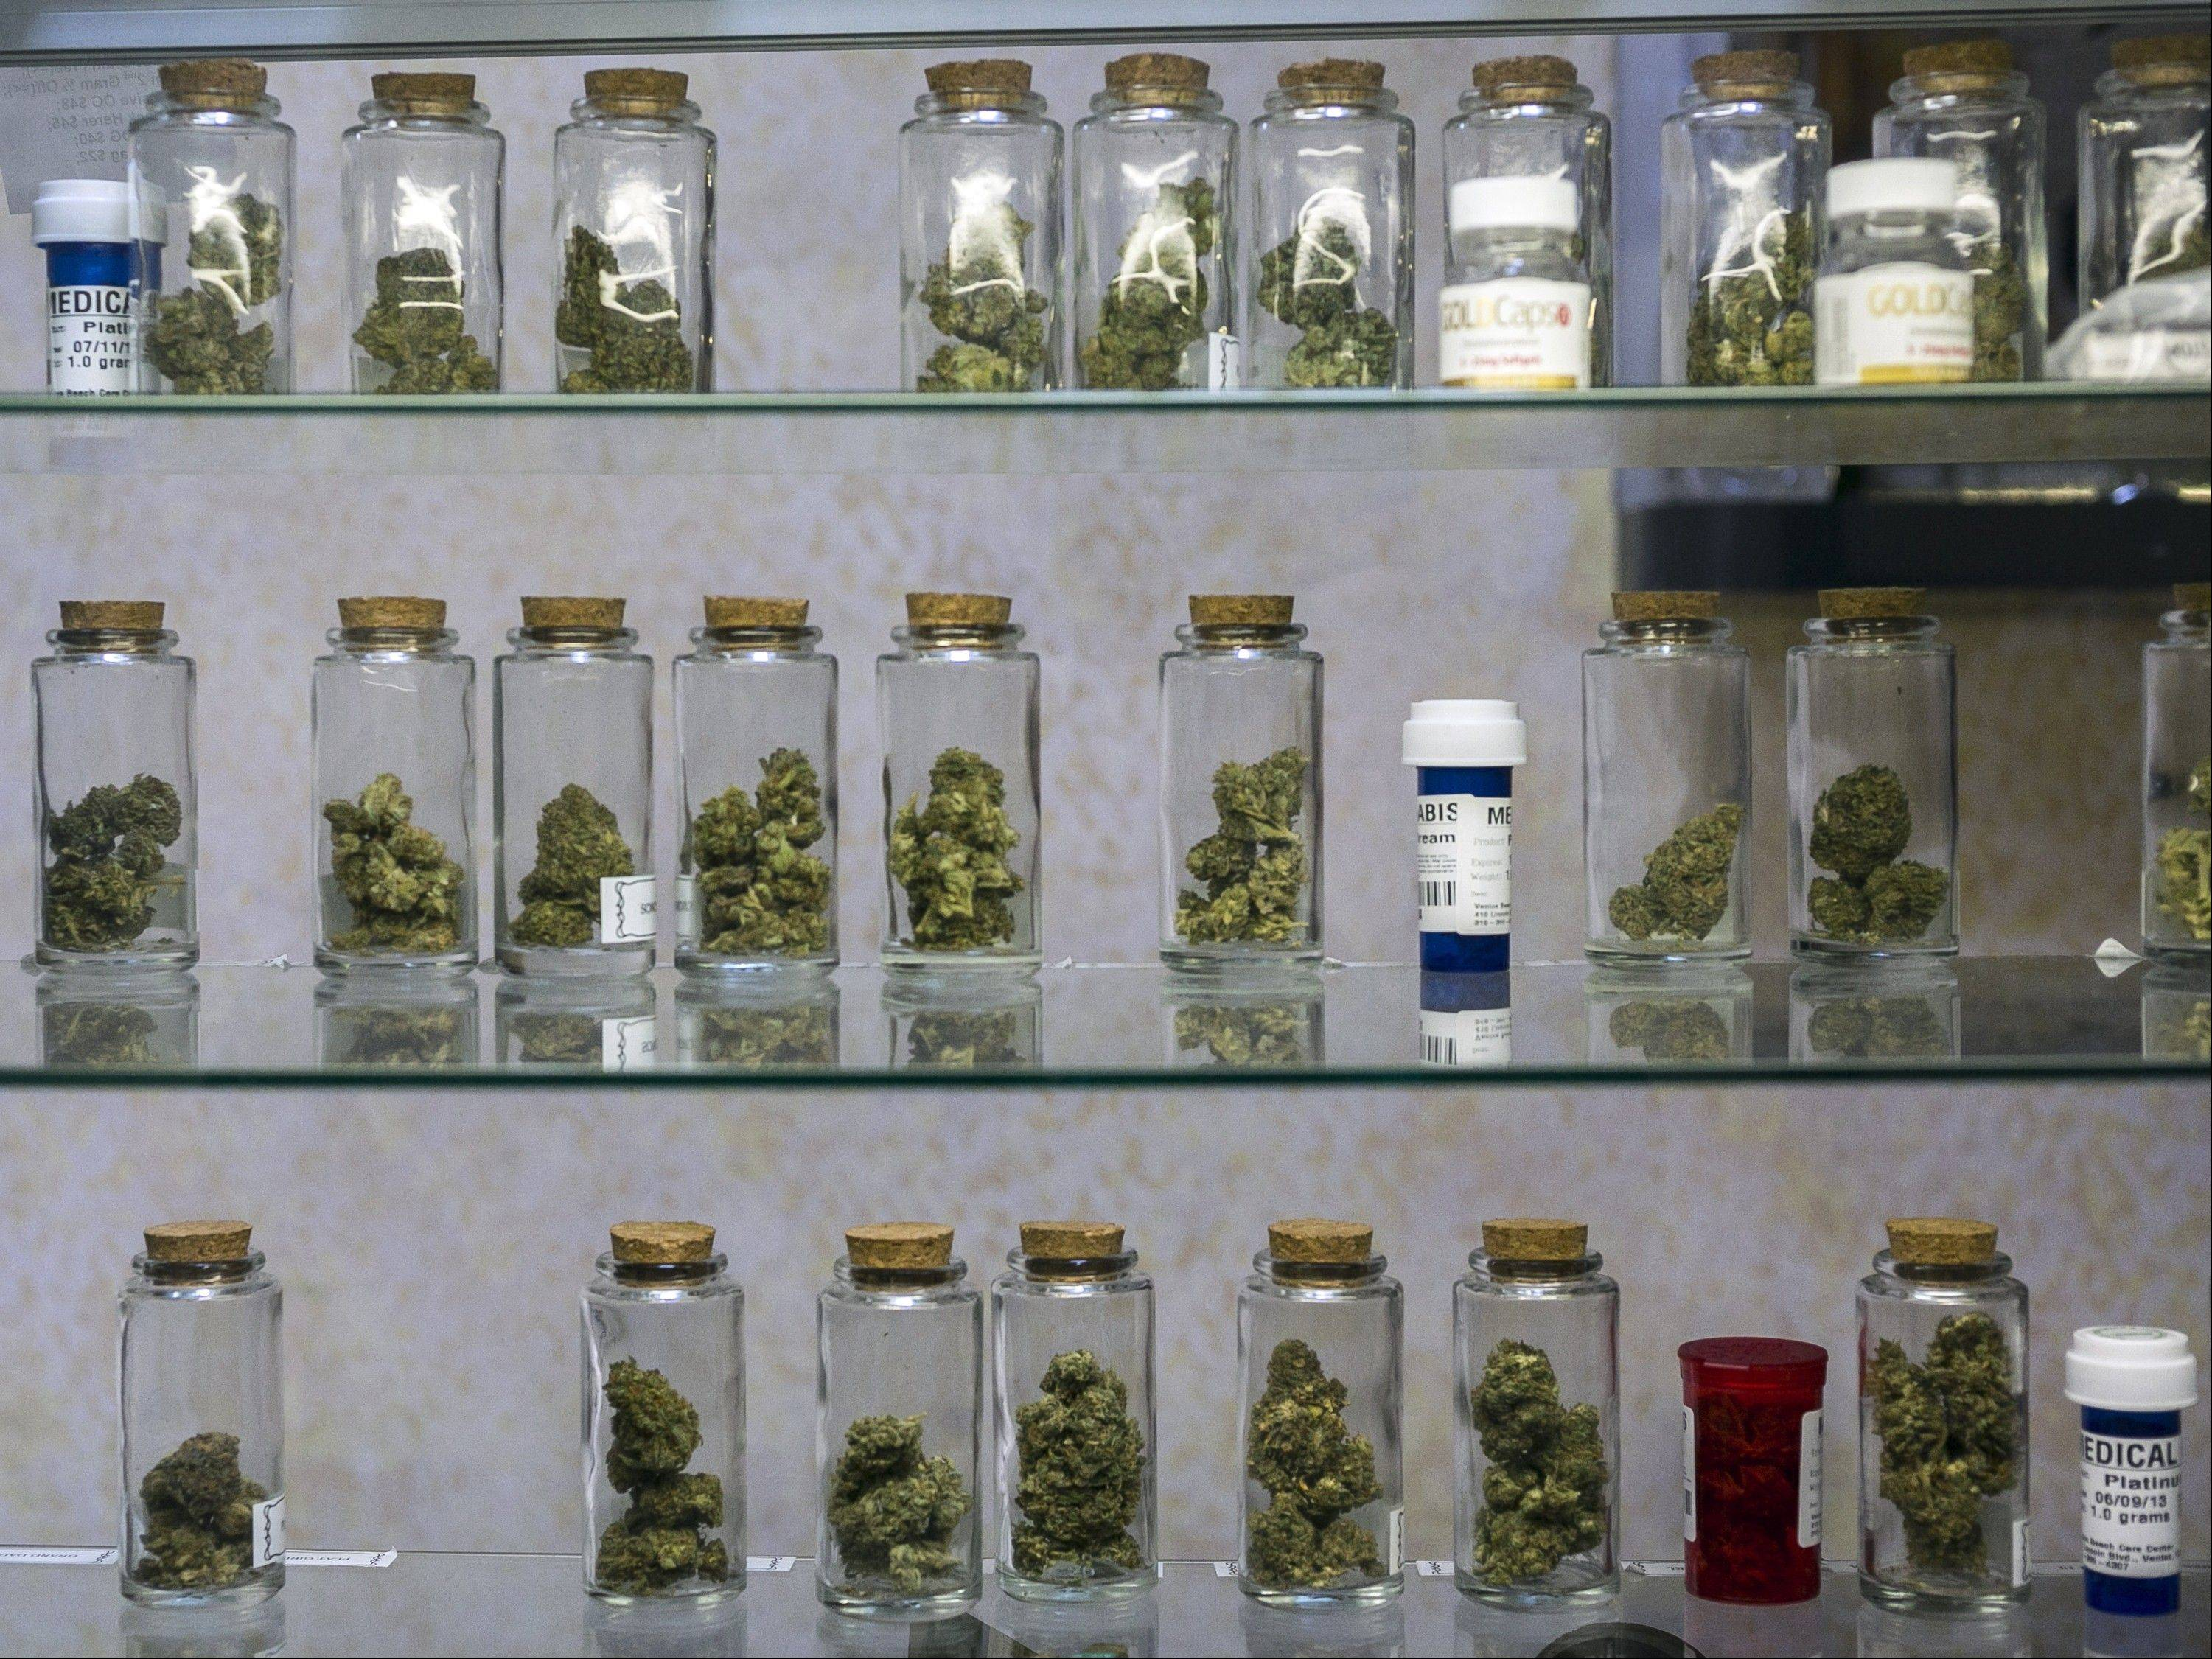 Medical marijuana vials displayed at the Venice Beach Care Center medical marijuana dispensary in Venice, Calif.